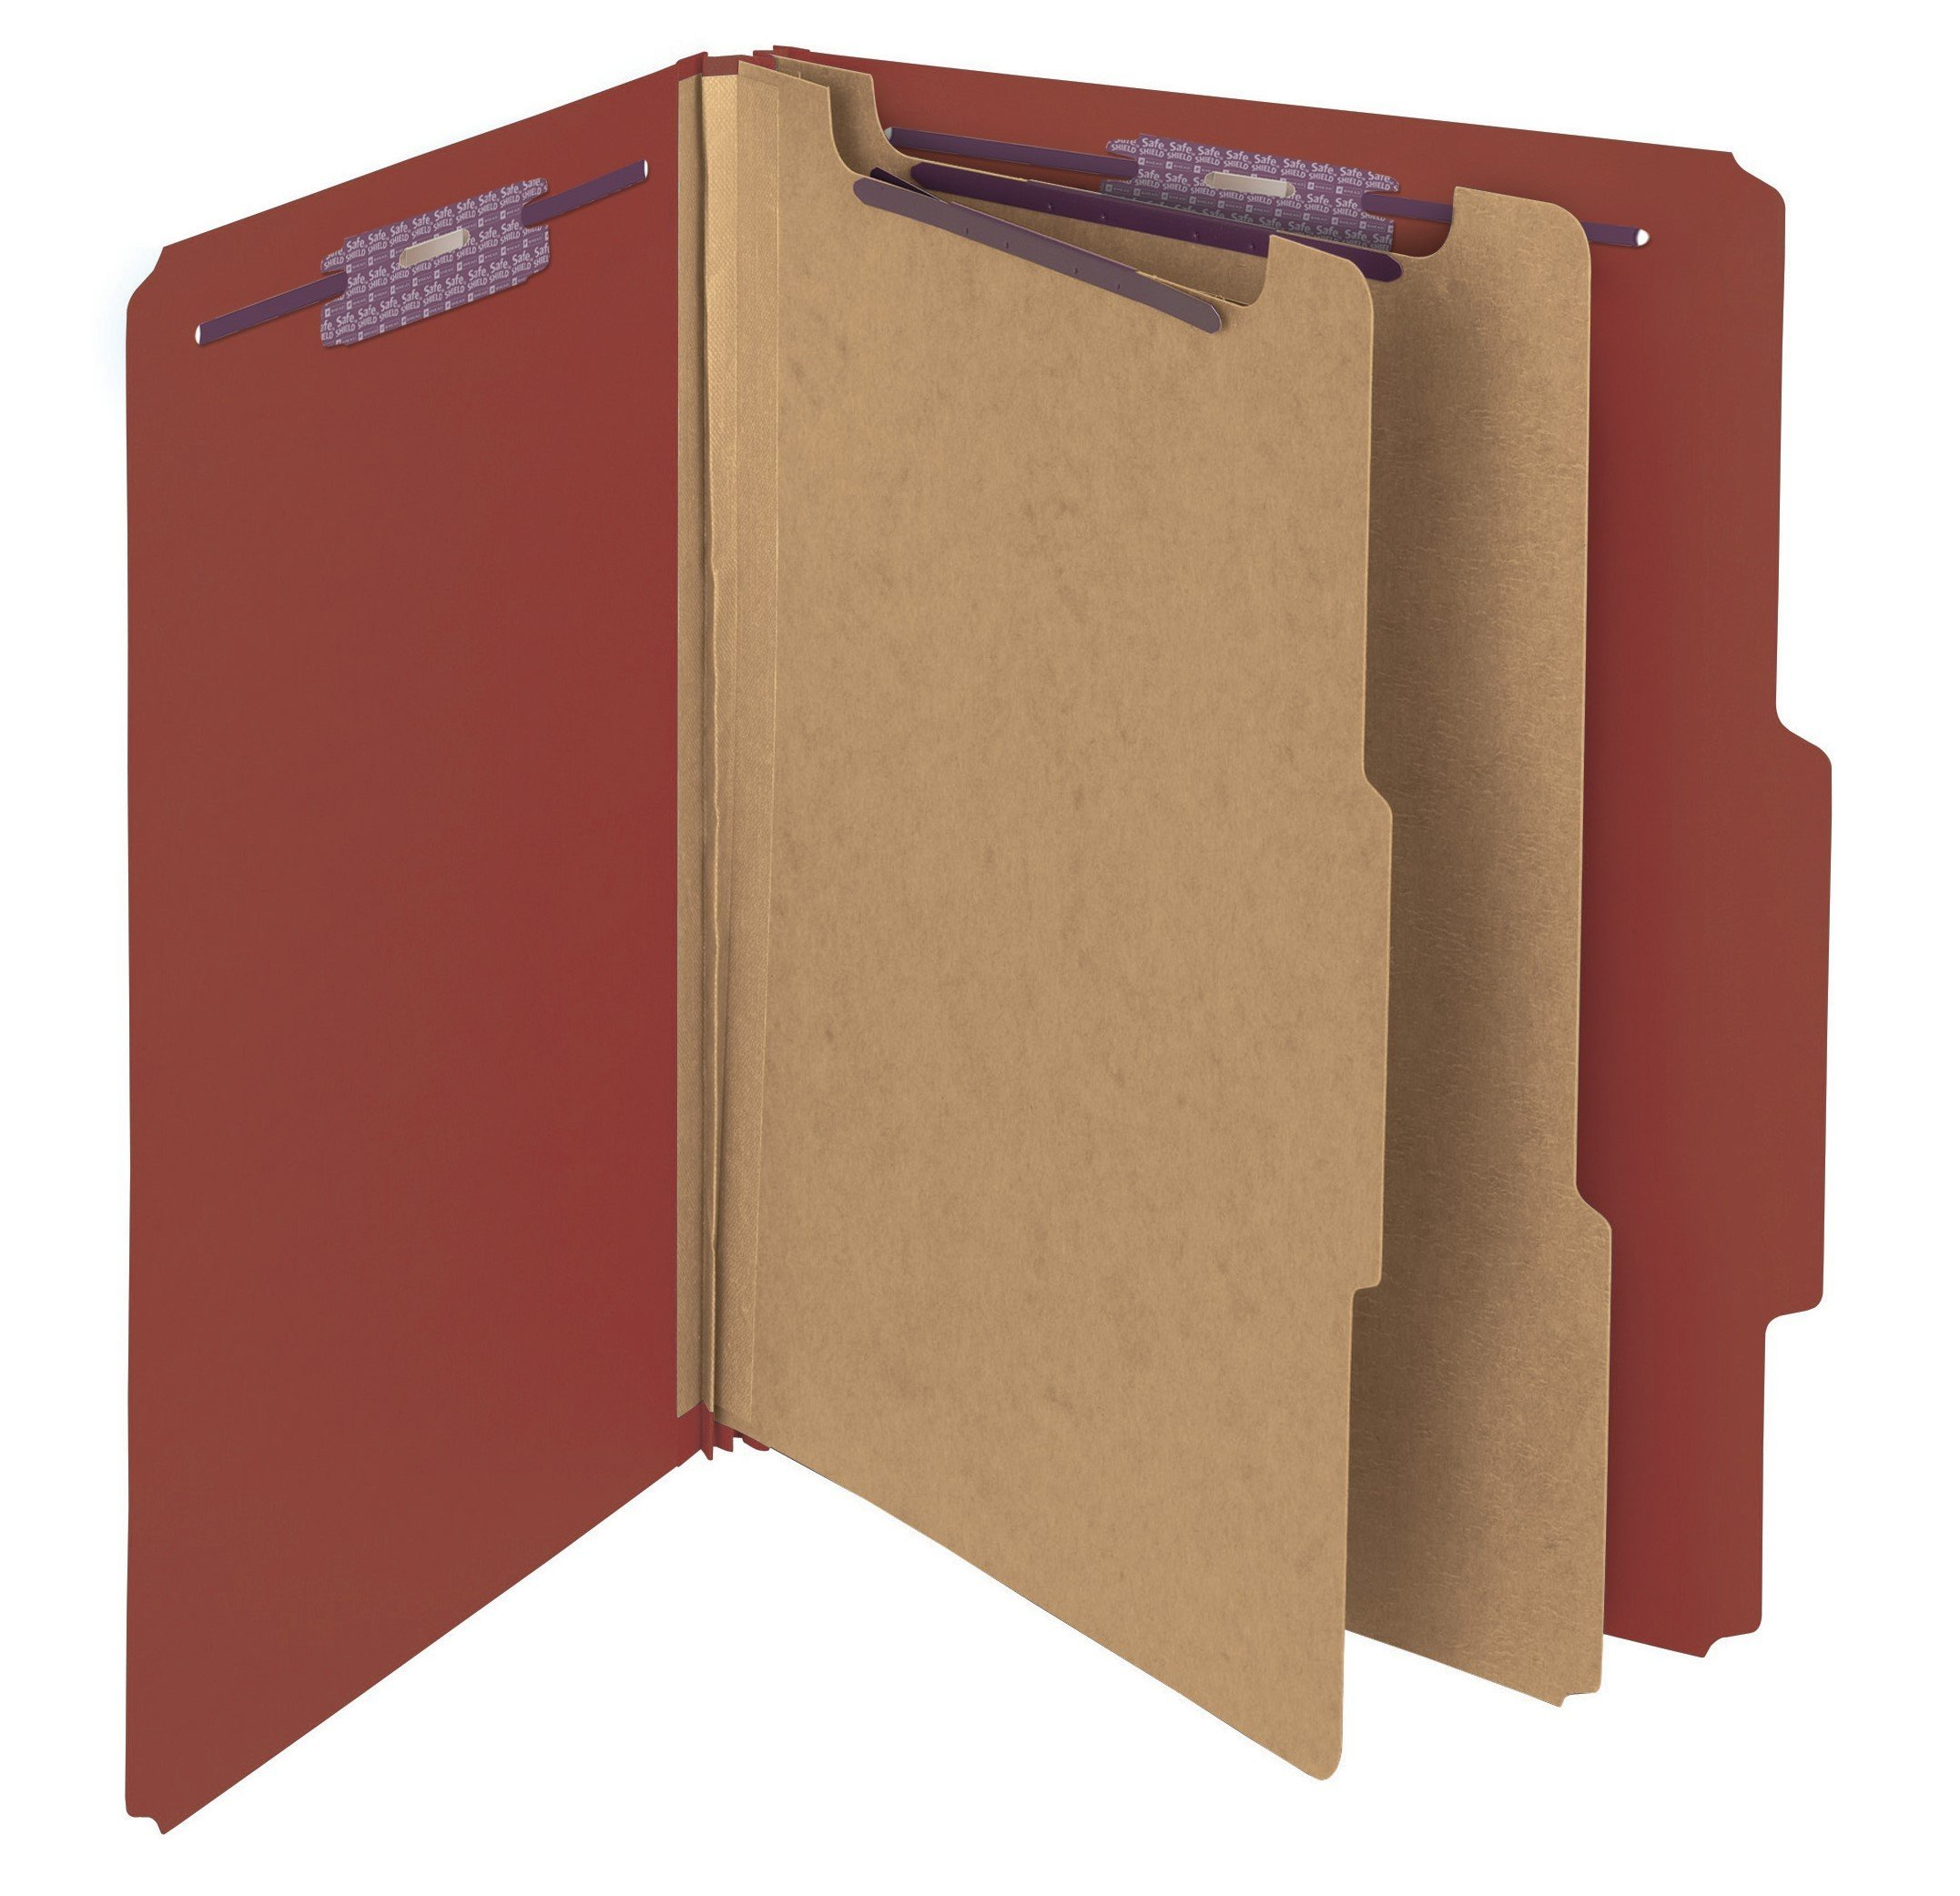 Smead Pressboard Classification File Folder with SafeSHIELD Fasteners, 2 Dividers, 2'' Expansion, Letter Size, Red, 10 per box (14073)